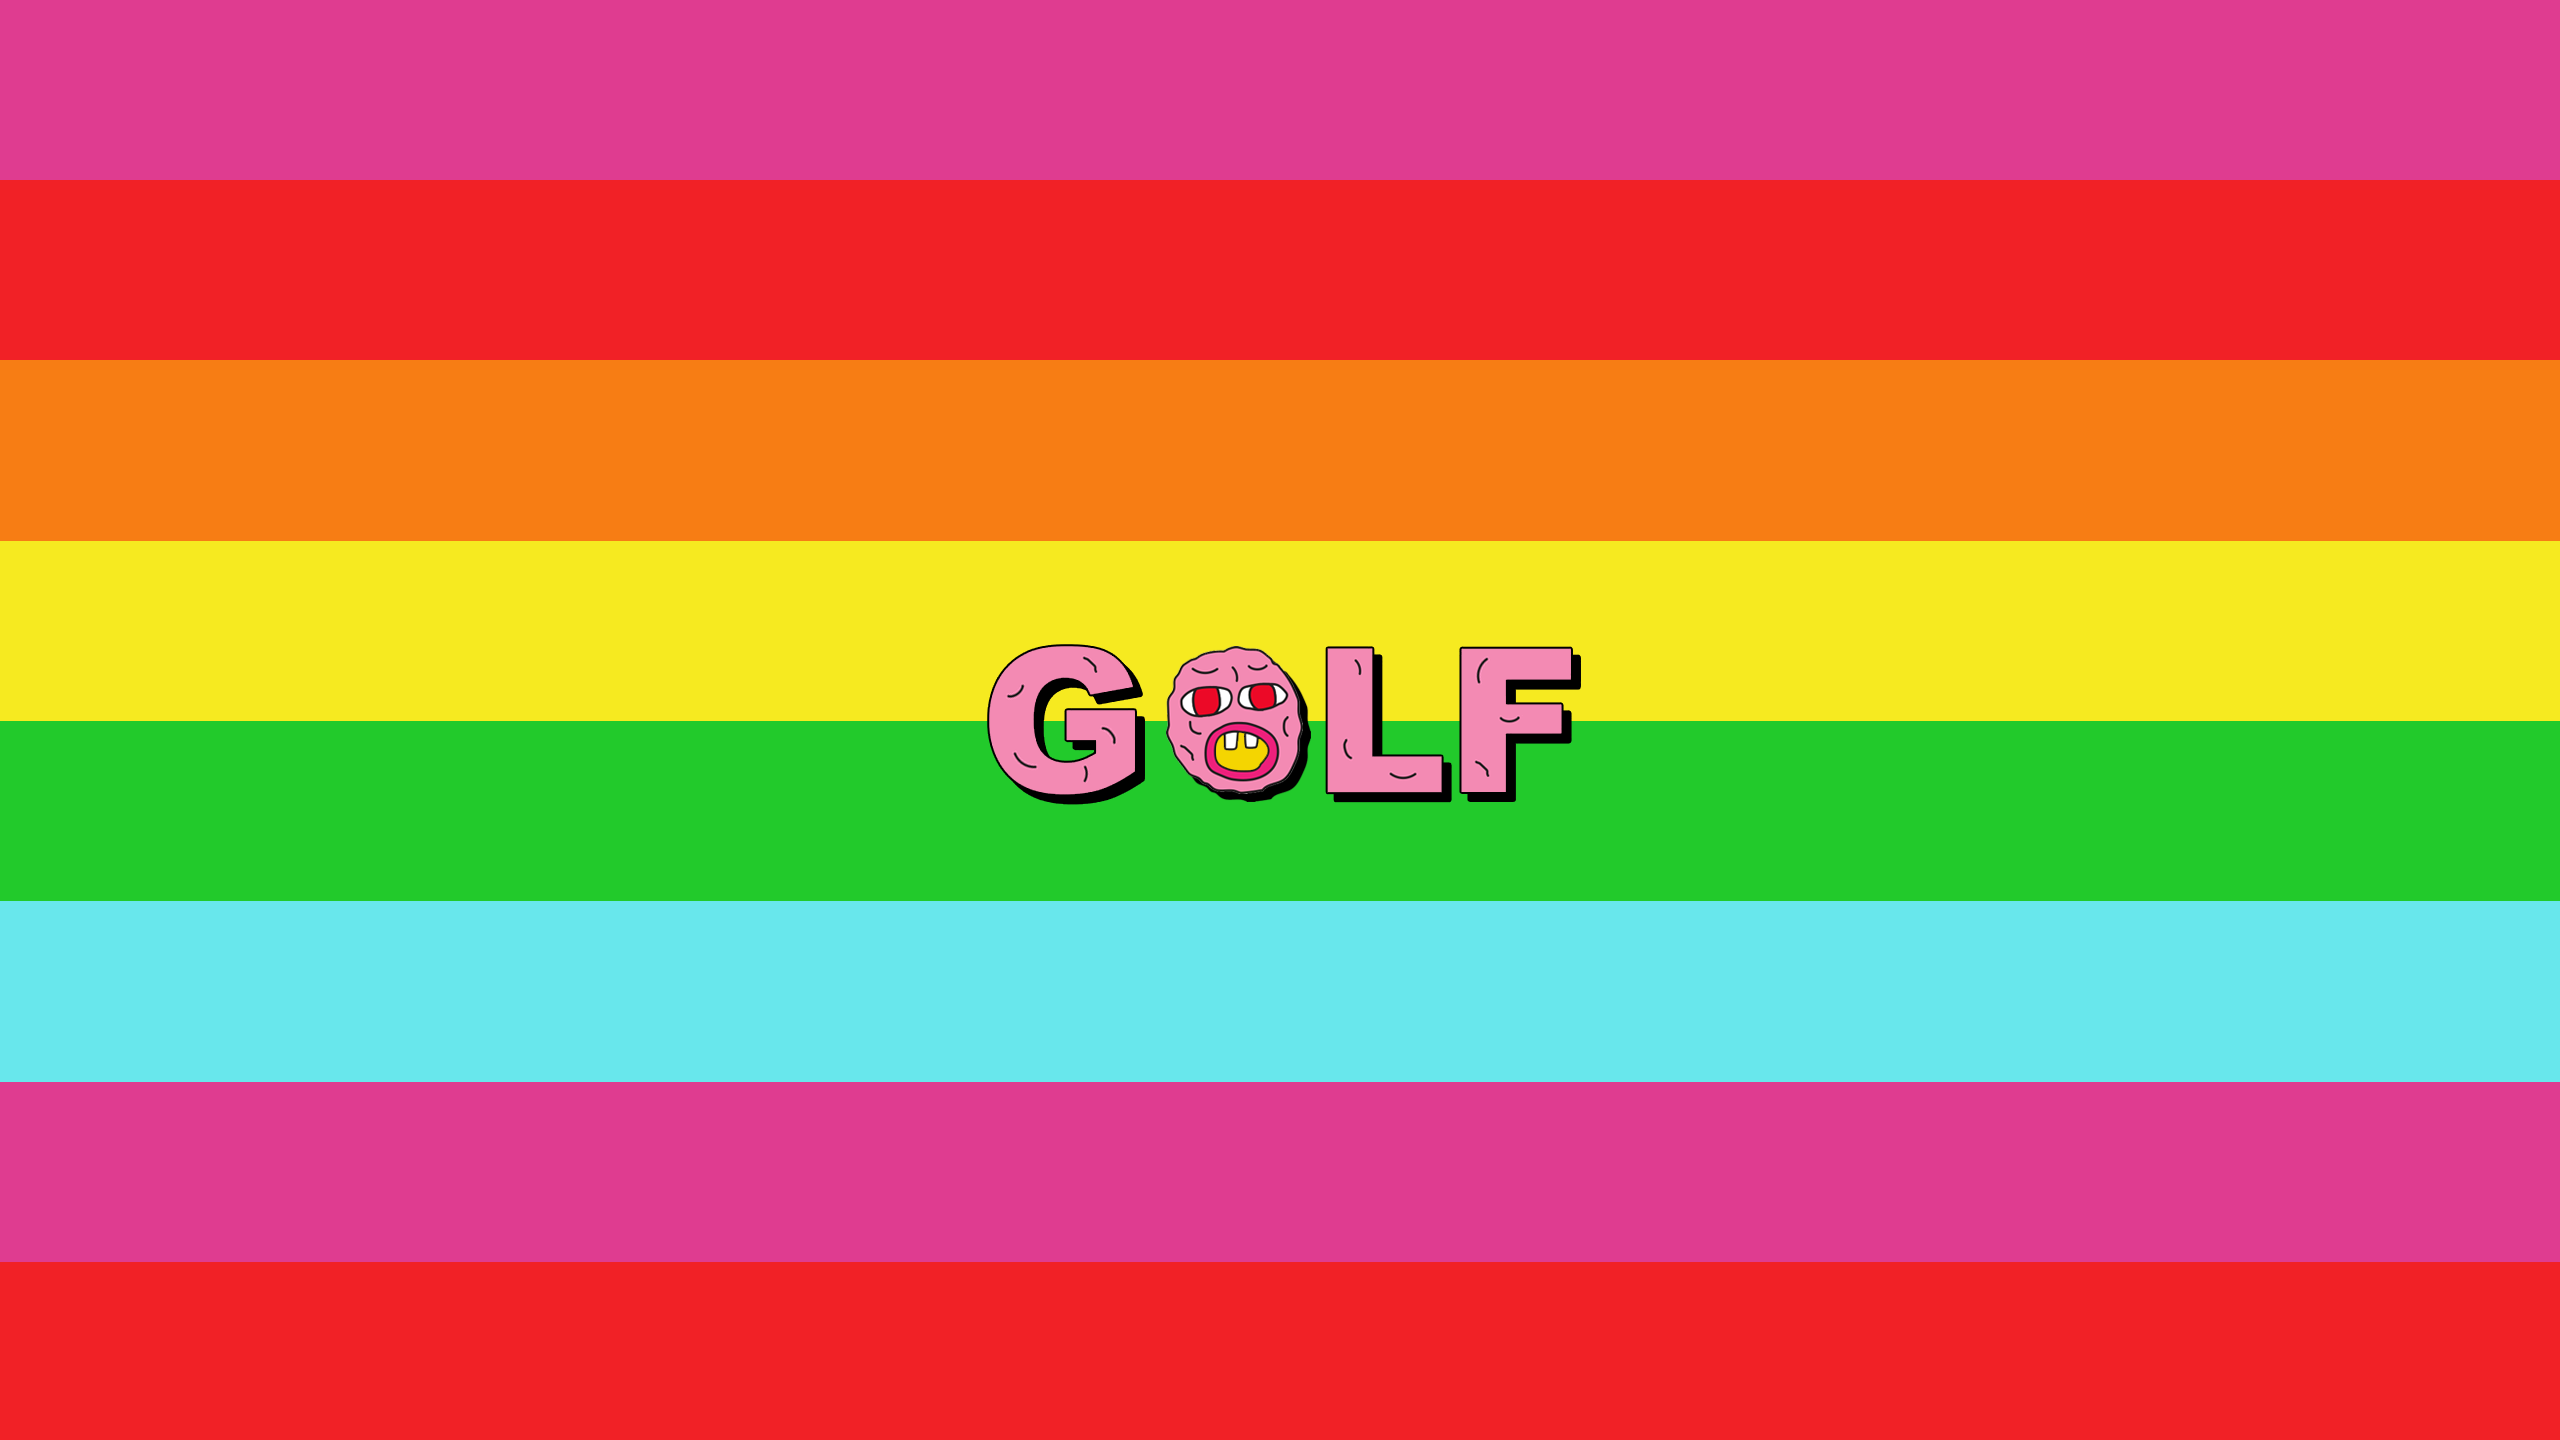 Golf Wang Wallpaper - WallpaperSafari Golf Wang Wallpapers